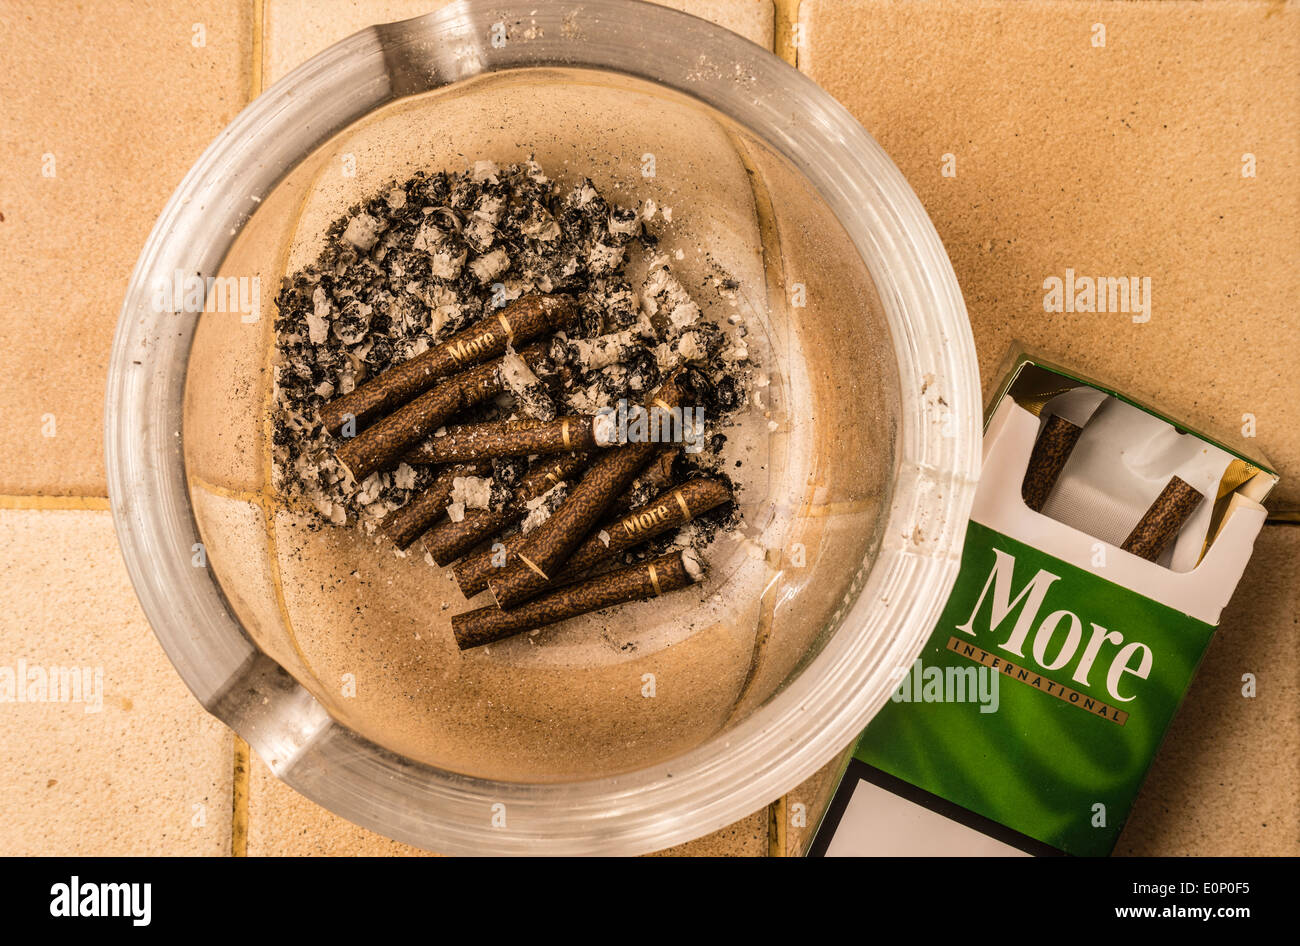 Buy the cigarettes Dunhill online